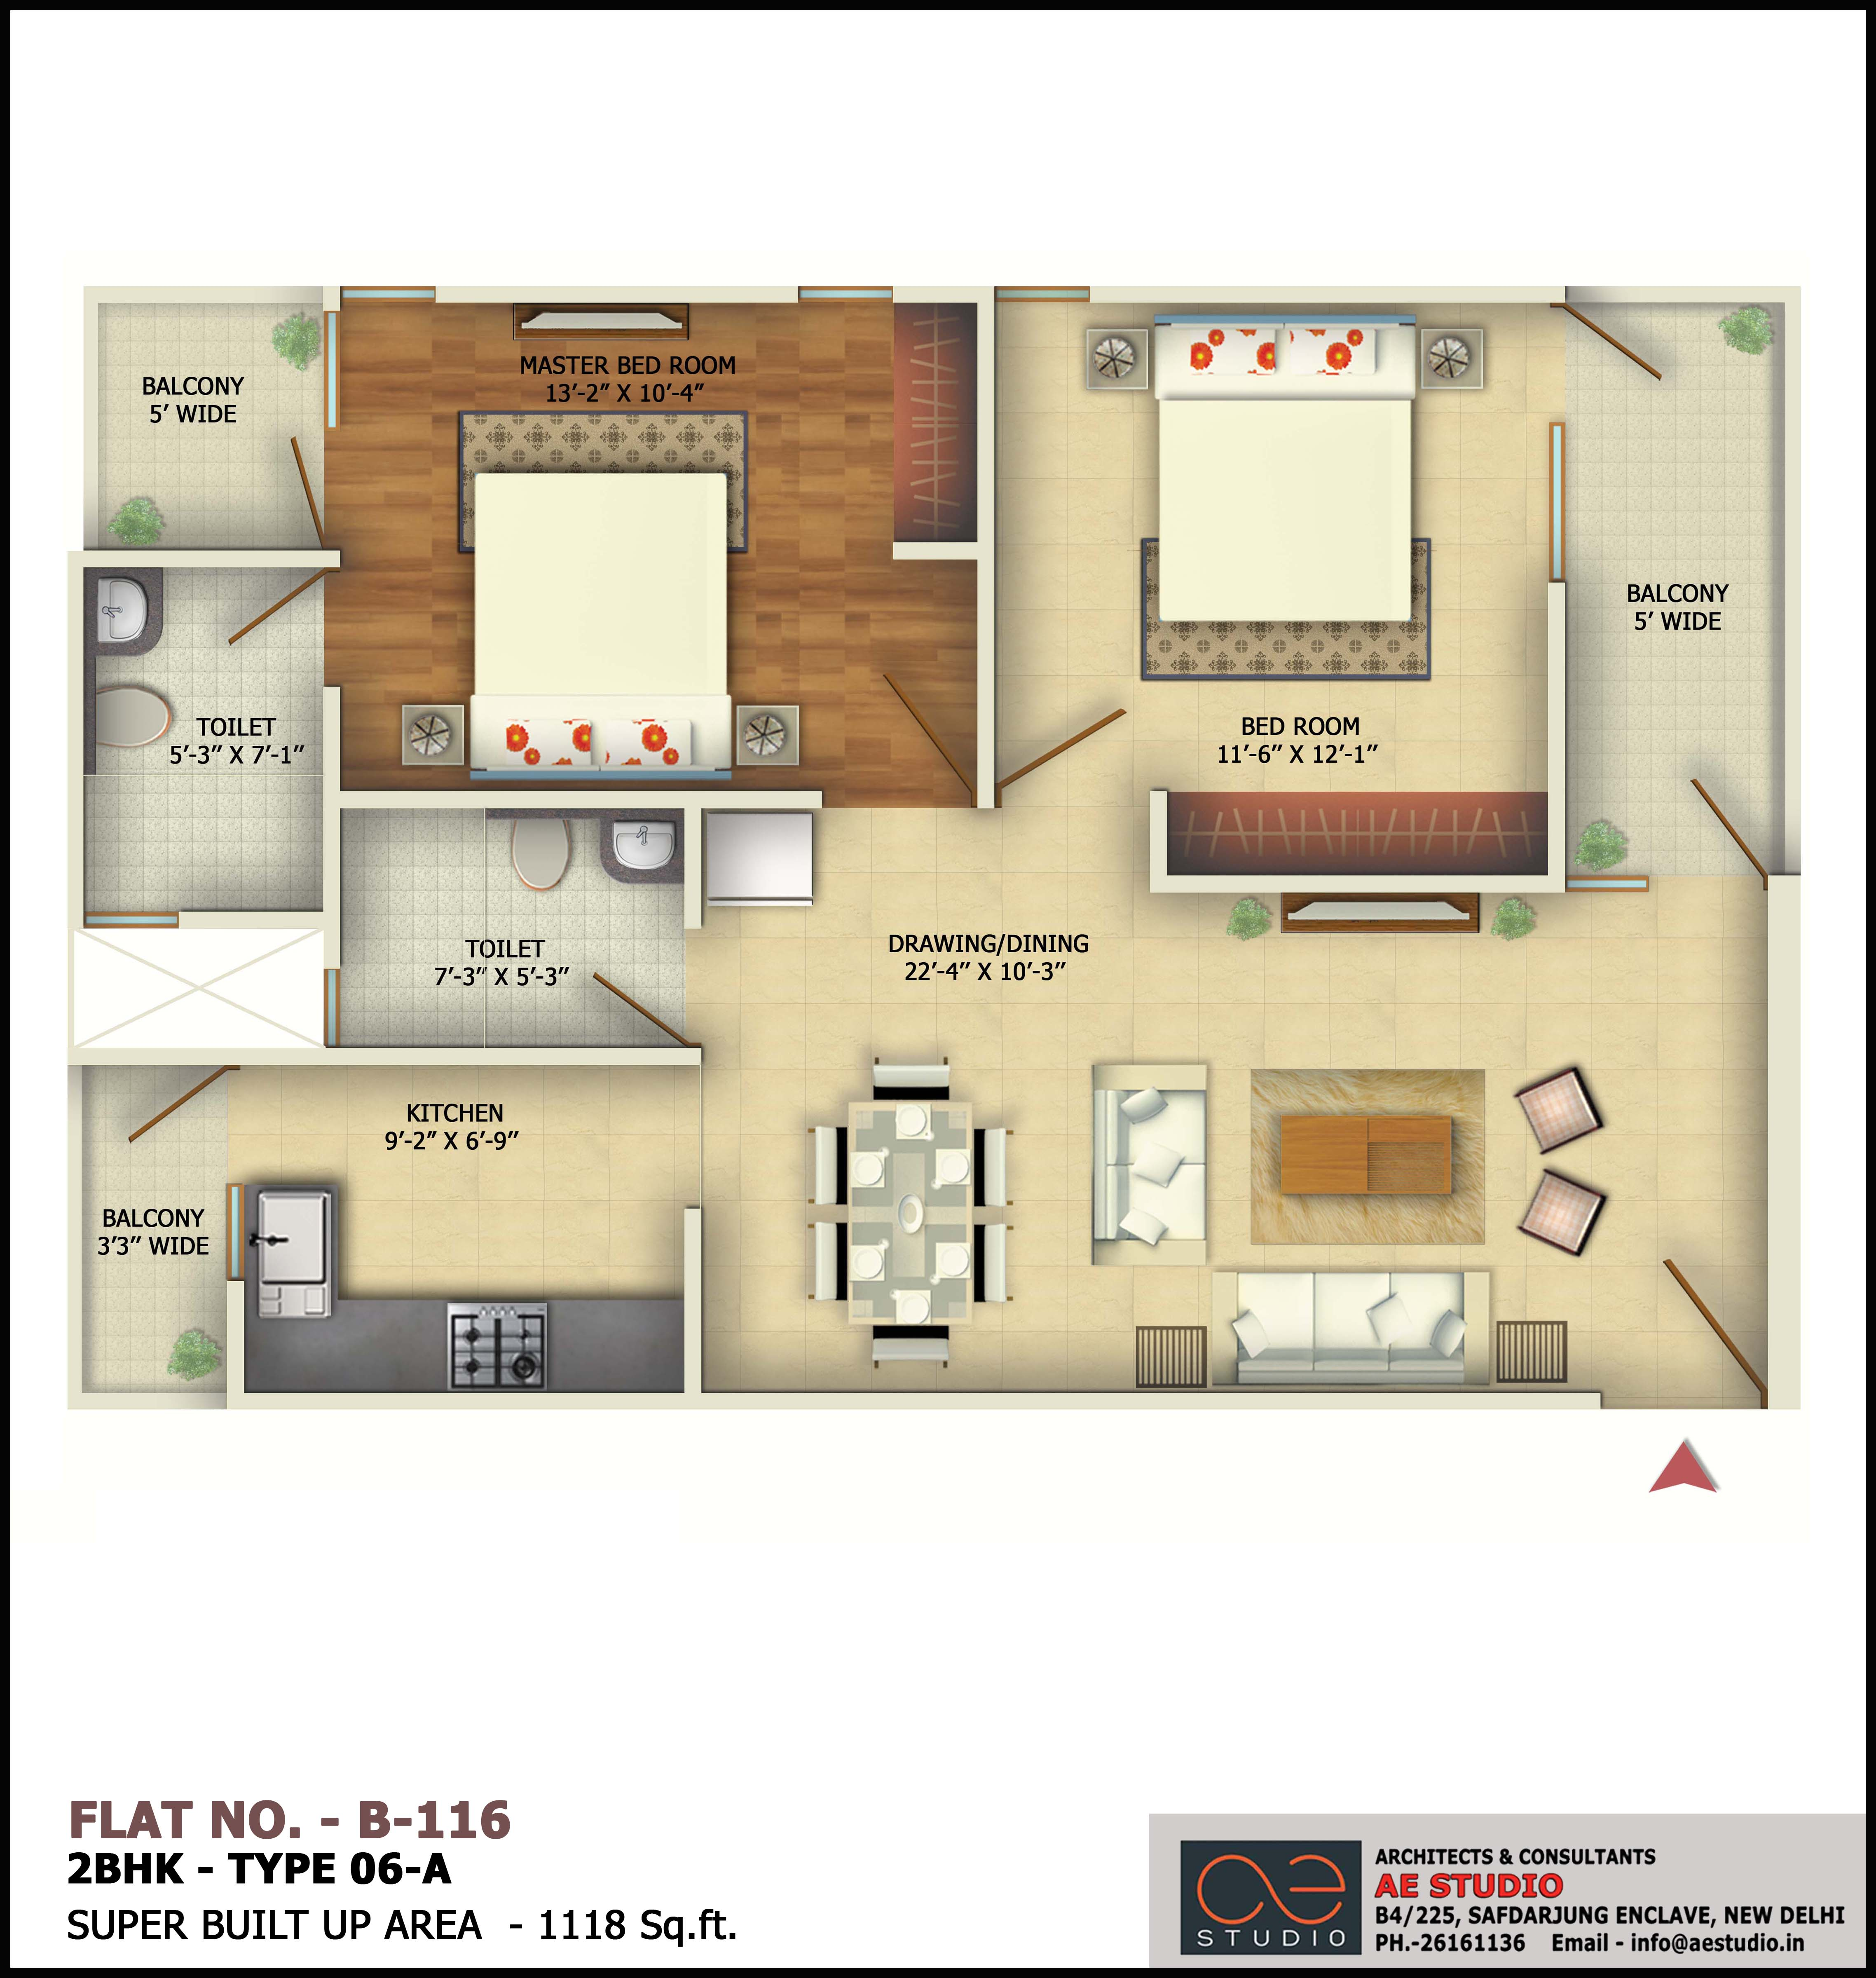 2BHK-TYPE-06-A